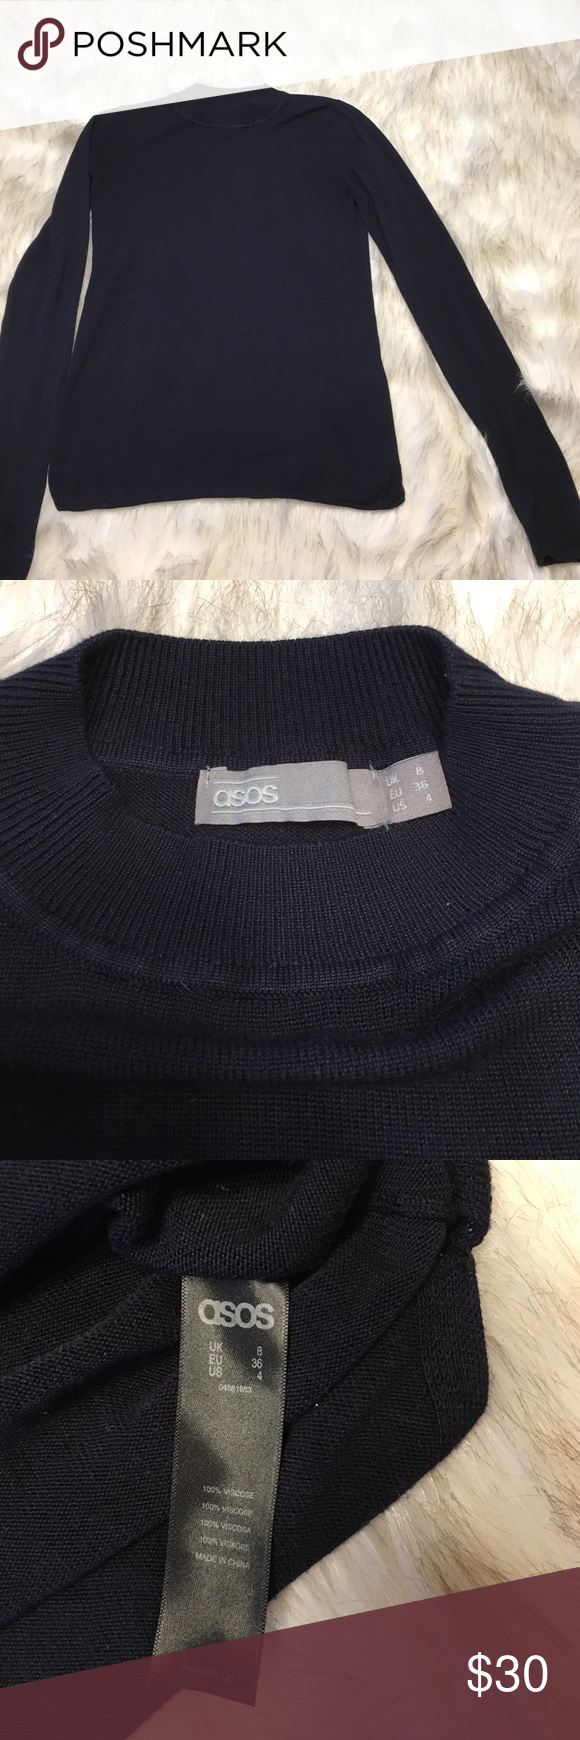 NWOT ASOS Mock Turtleneck Sweater Beautiful, finely knit black mock turtleneck sweater by ASOS. Never worn, in perfect condition. ASOS Sweaters Cowl & Turtlenecks